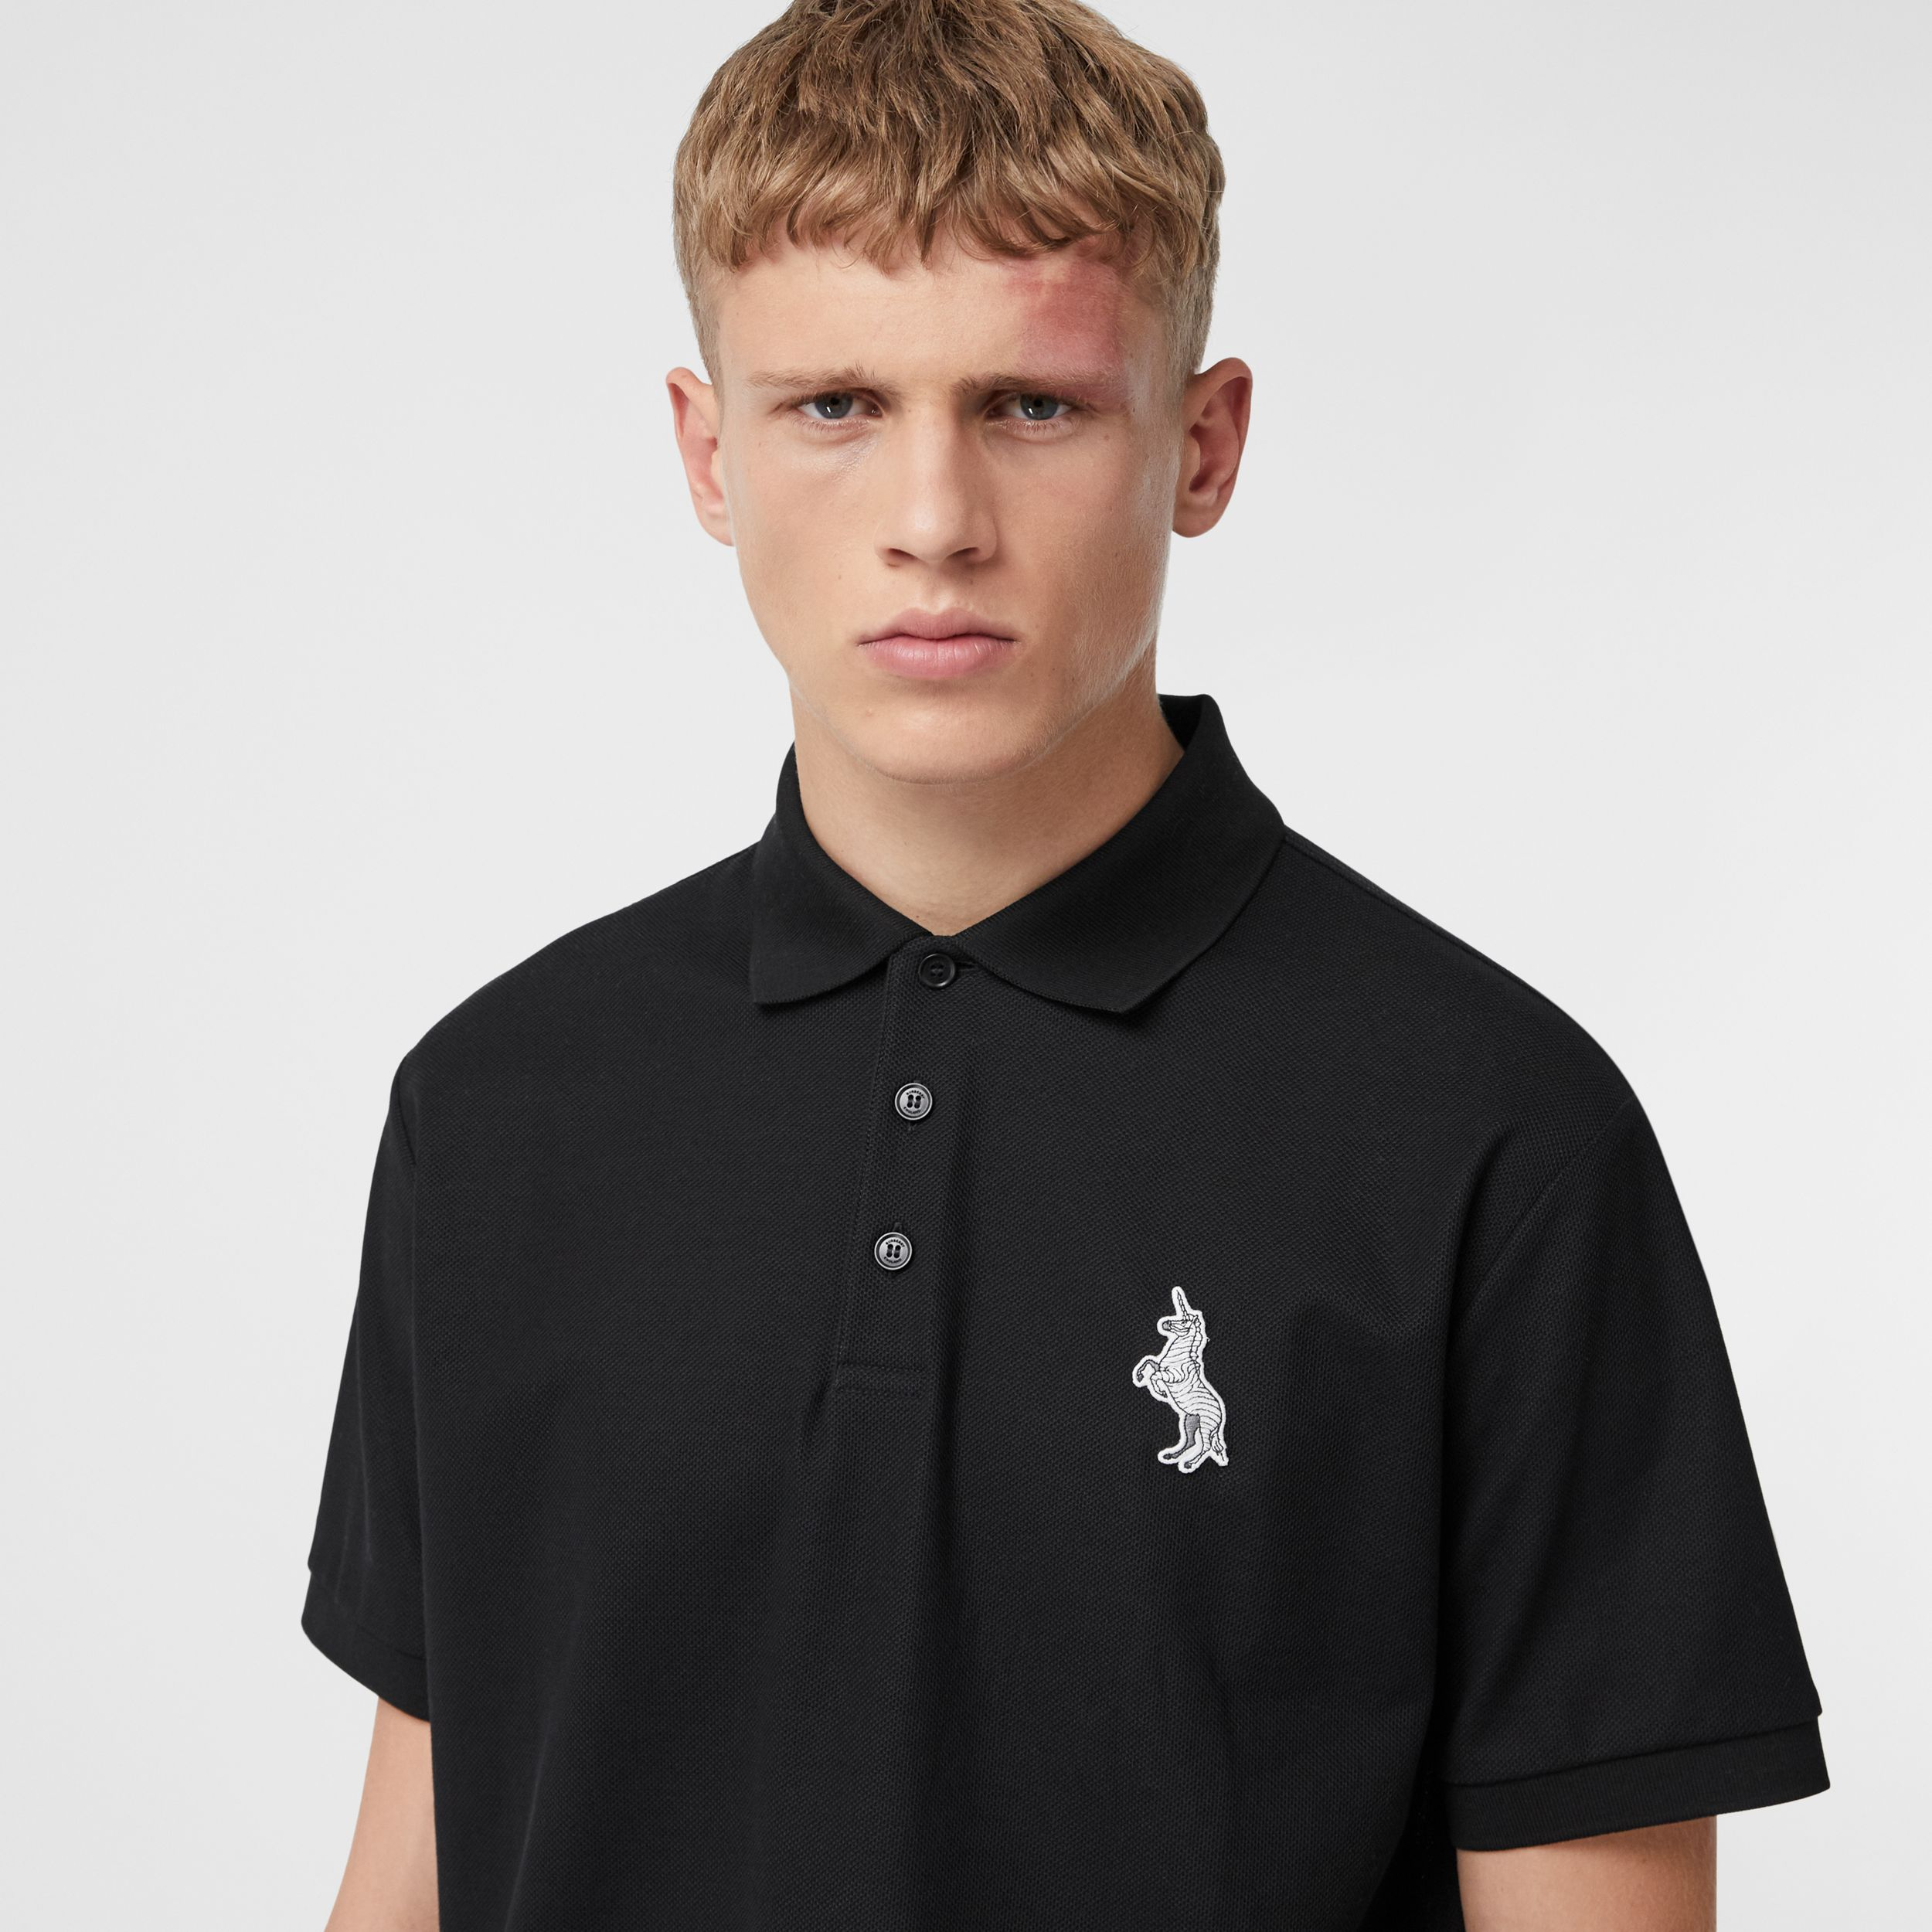 Zebra Appliqué Cotton Piqué Polo Shirt in Black - Men | Burberry Australia - 2